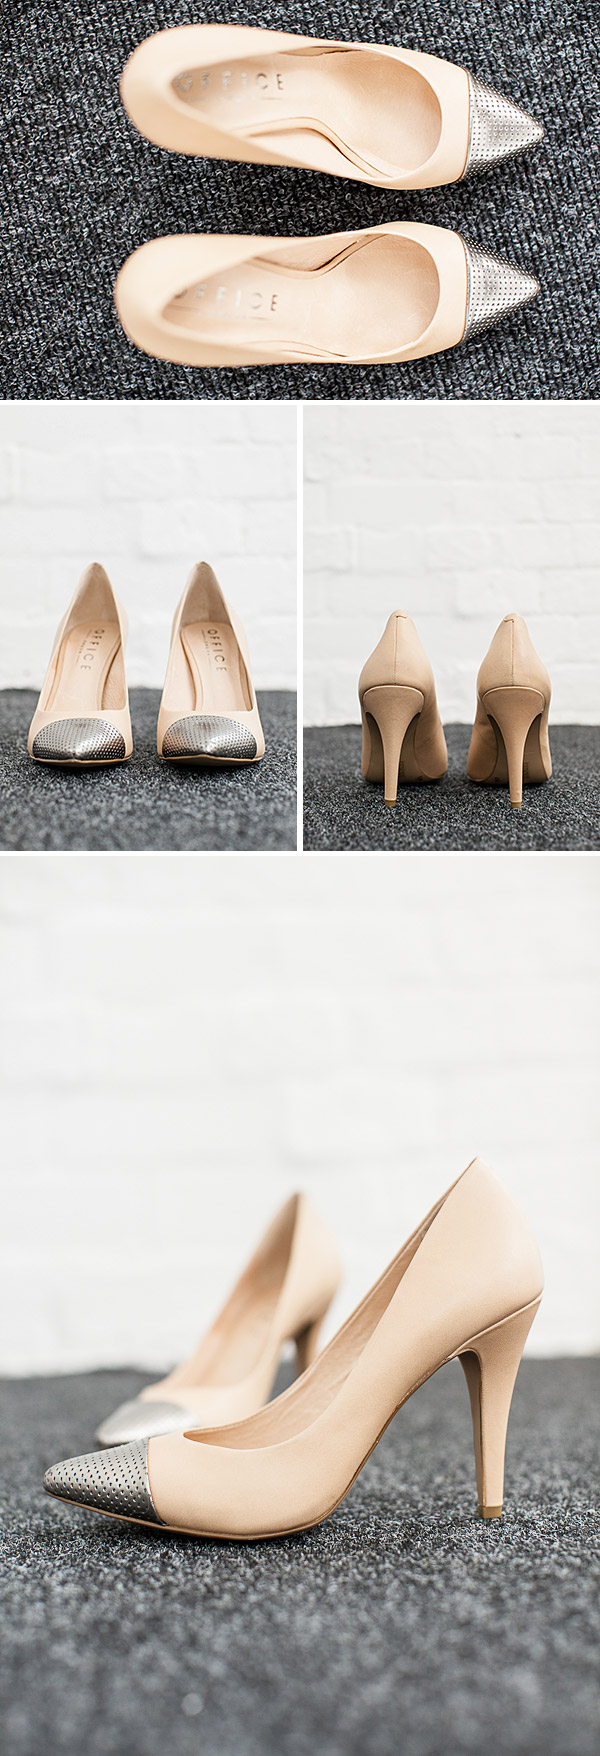 shoe RMW Rates   Nude Shoes With EDGE.